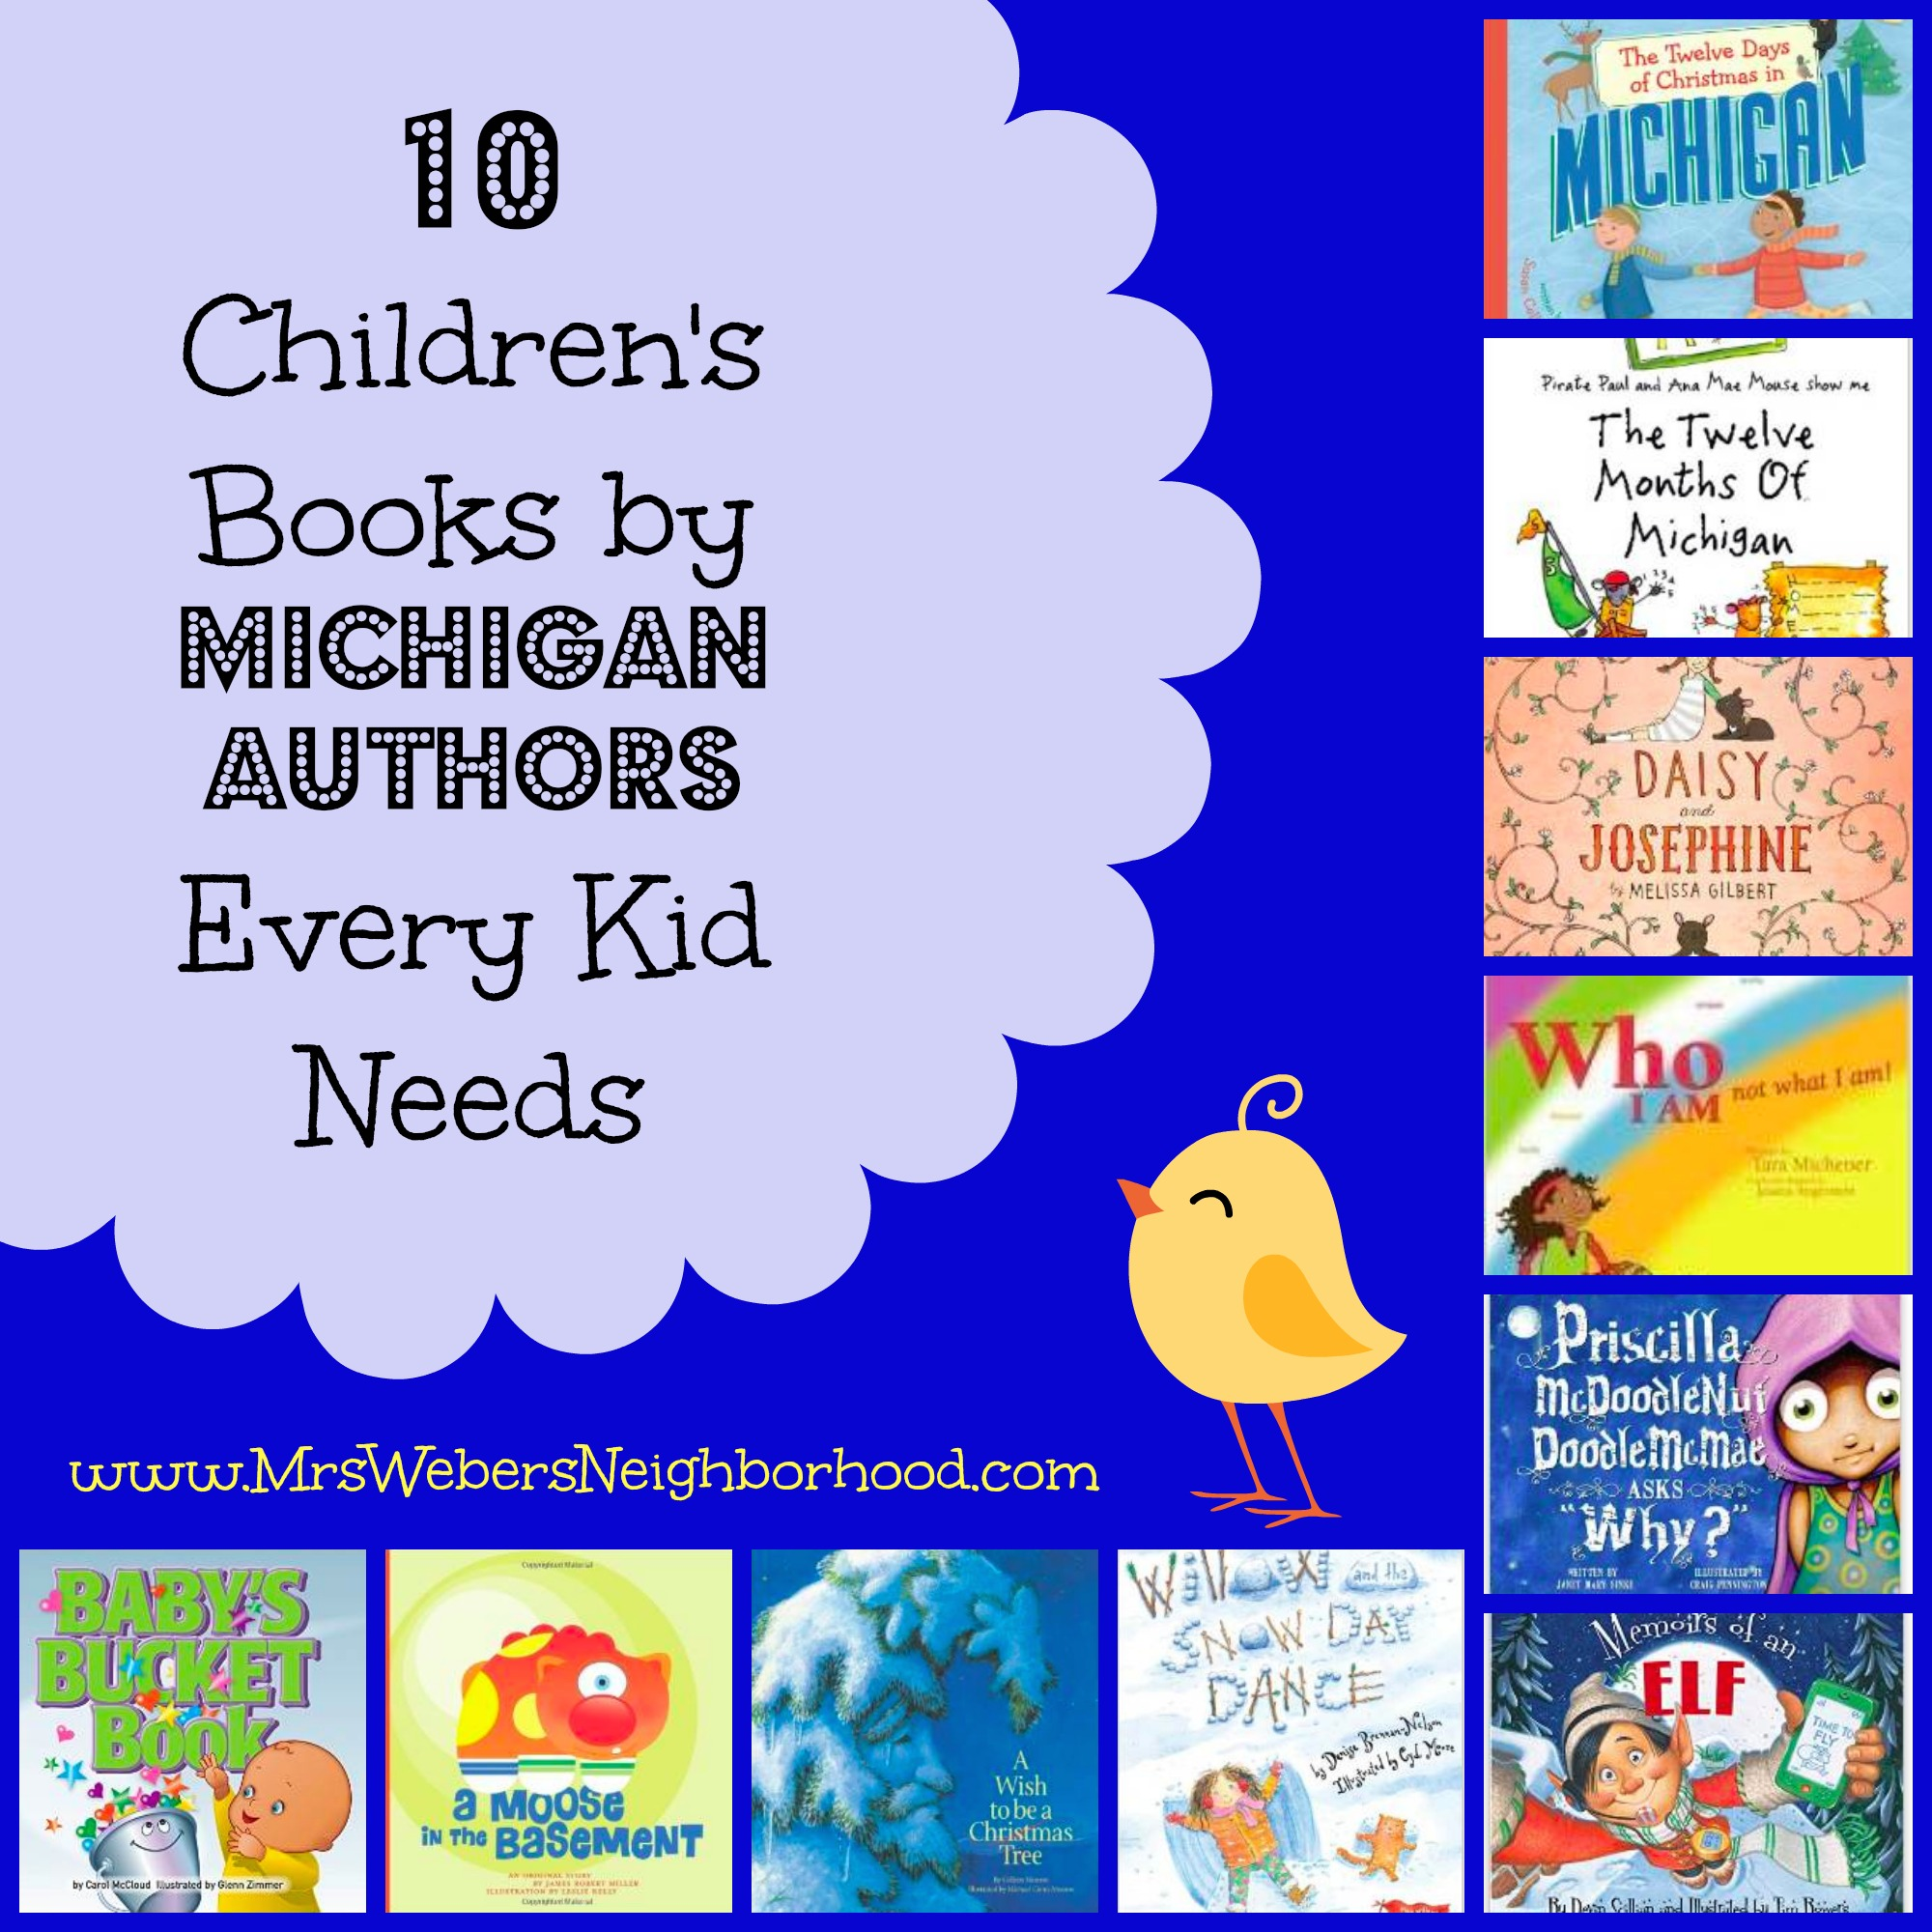 10 Children's Books by Michigan Authors